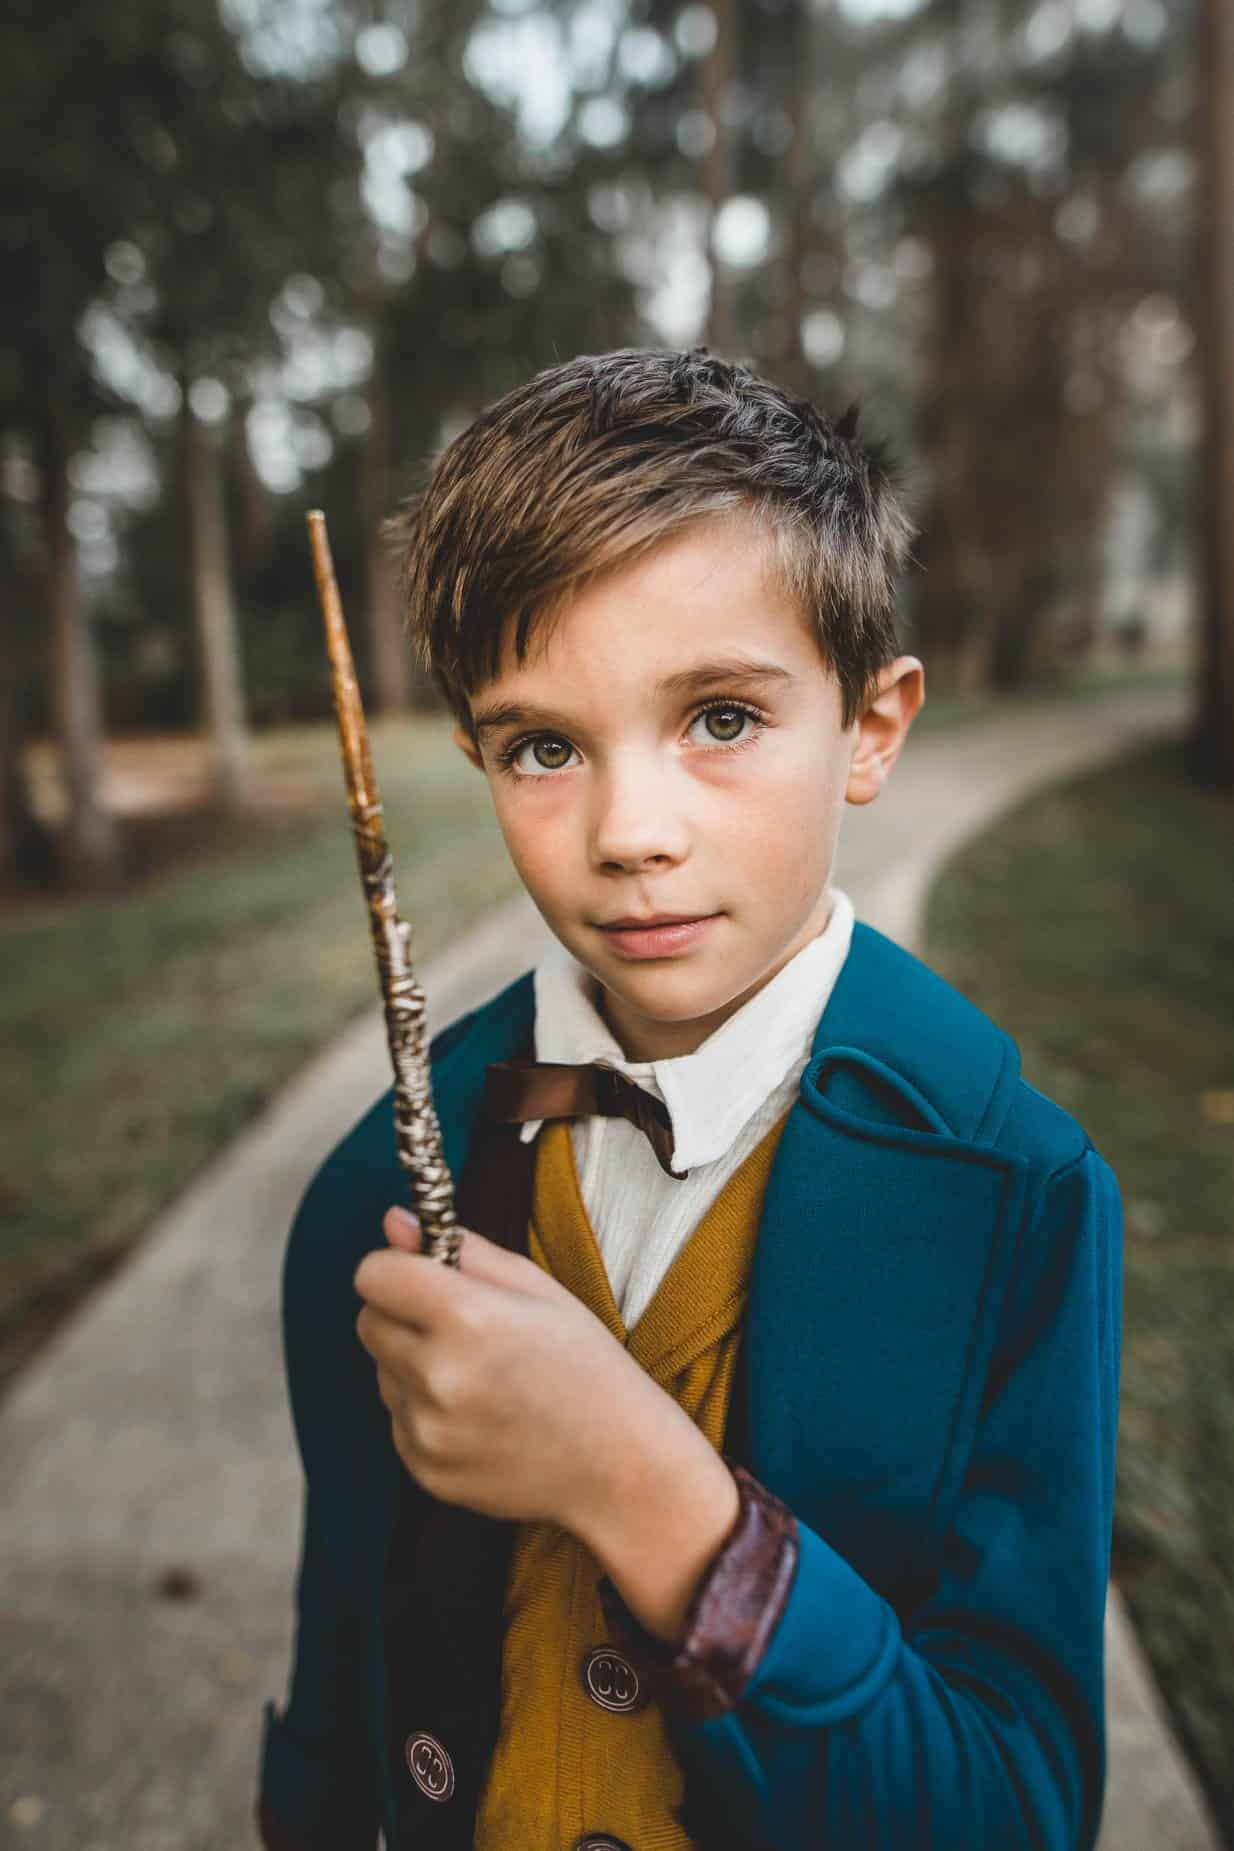 A boy dressed up as Harry Potter